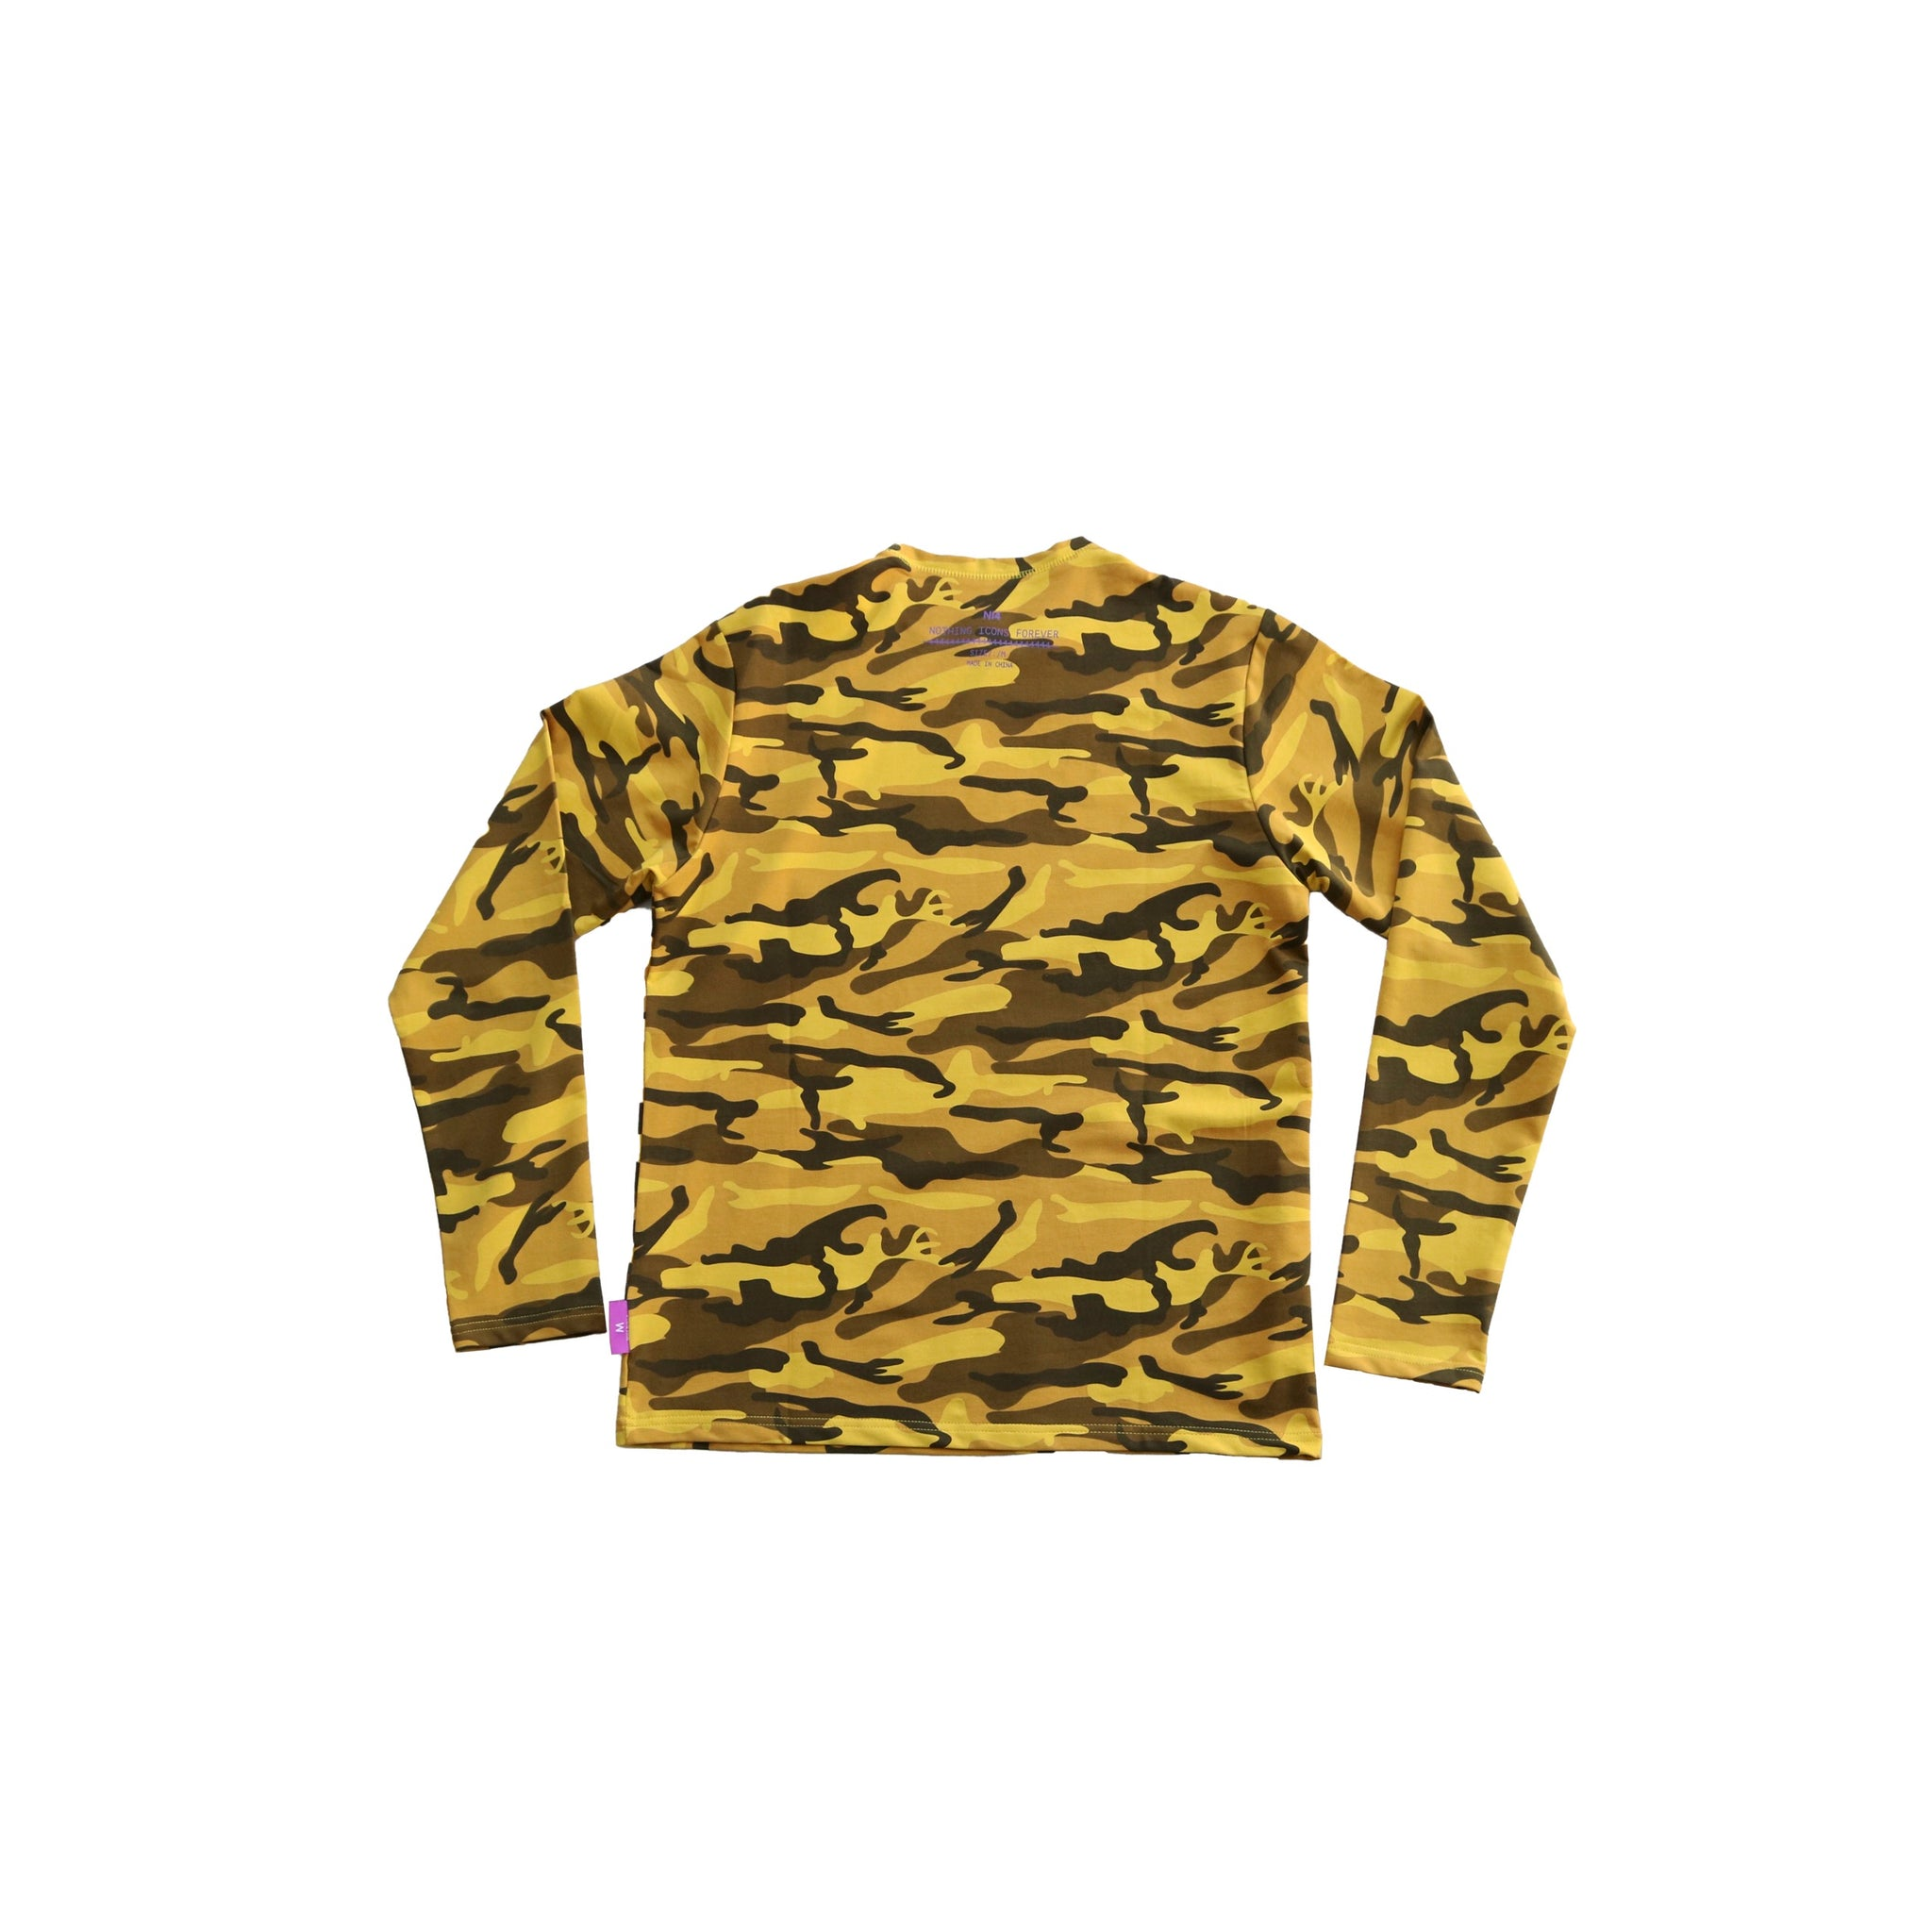 mens yellow camo long sleeve t-shirt - 8586